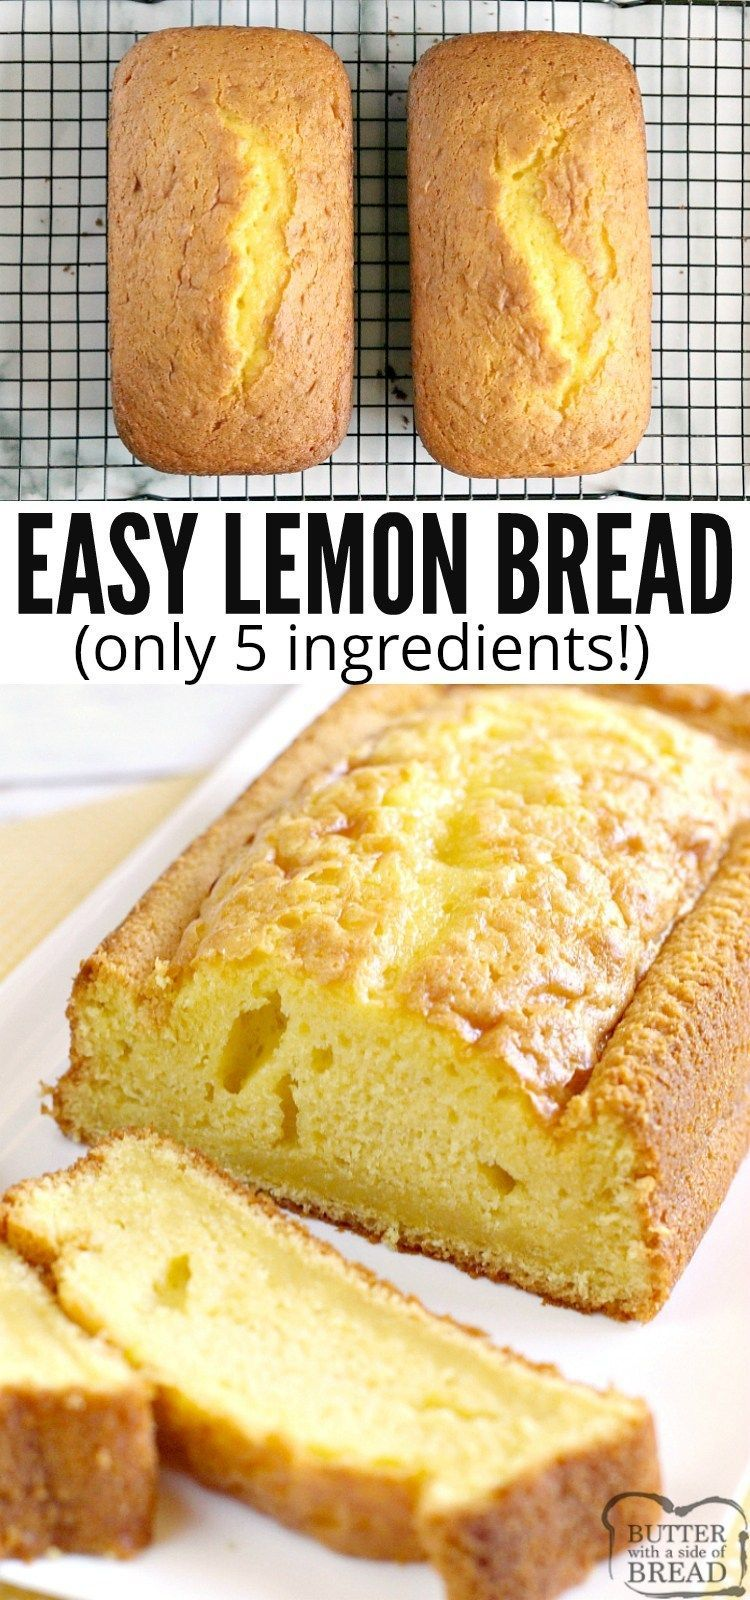 Easy Lemon Bread Is Moist Full Of Lemon Flavor And Made With Only Five Ingredients This Lemon Bread Easy Lemon Bread Lemon Bread Recipes Bread Recipes Sweet